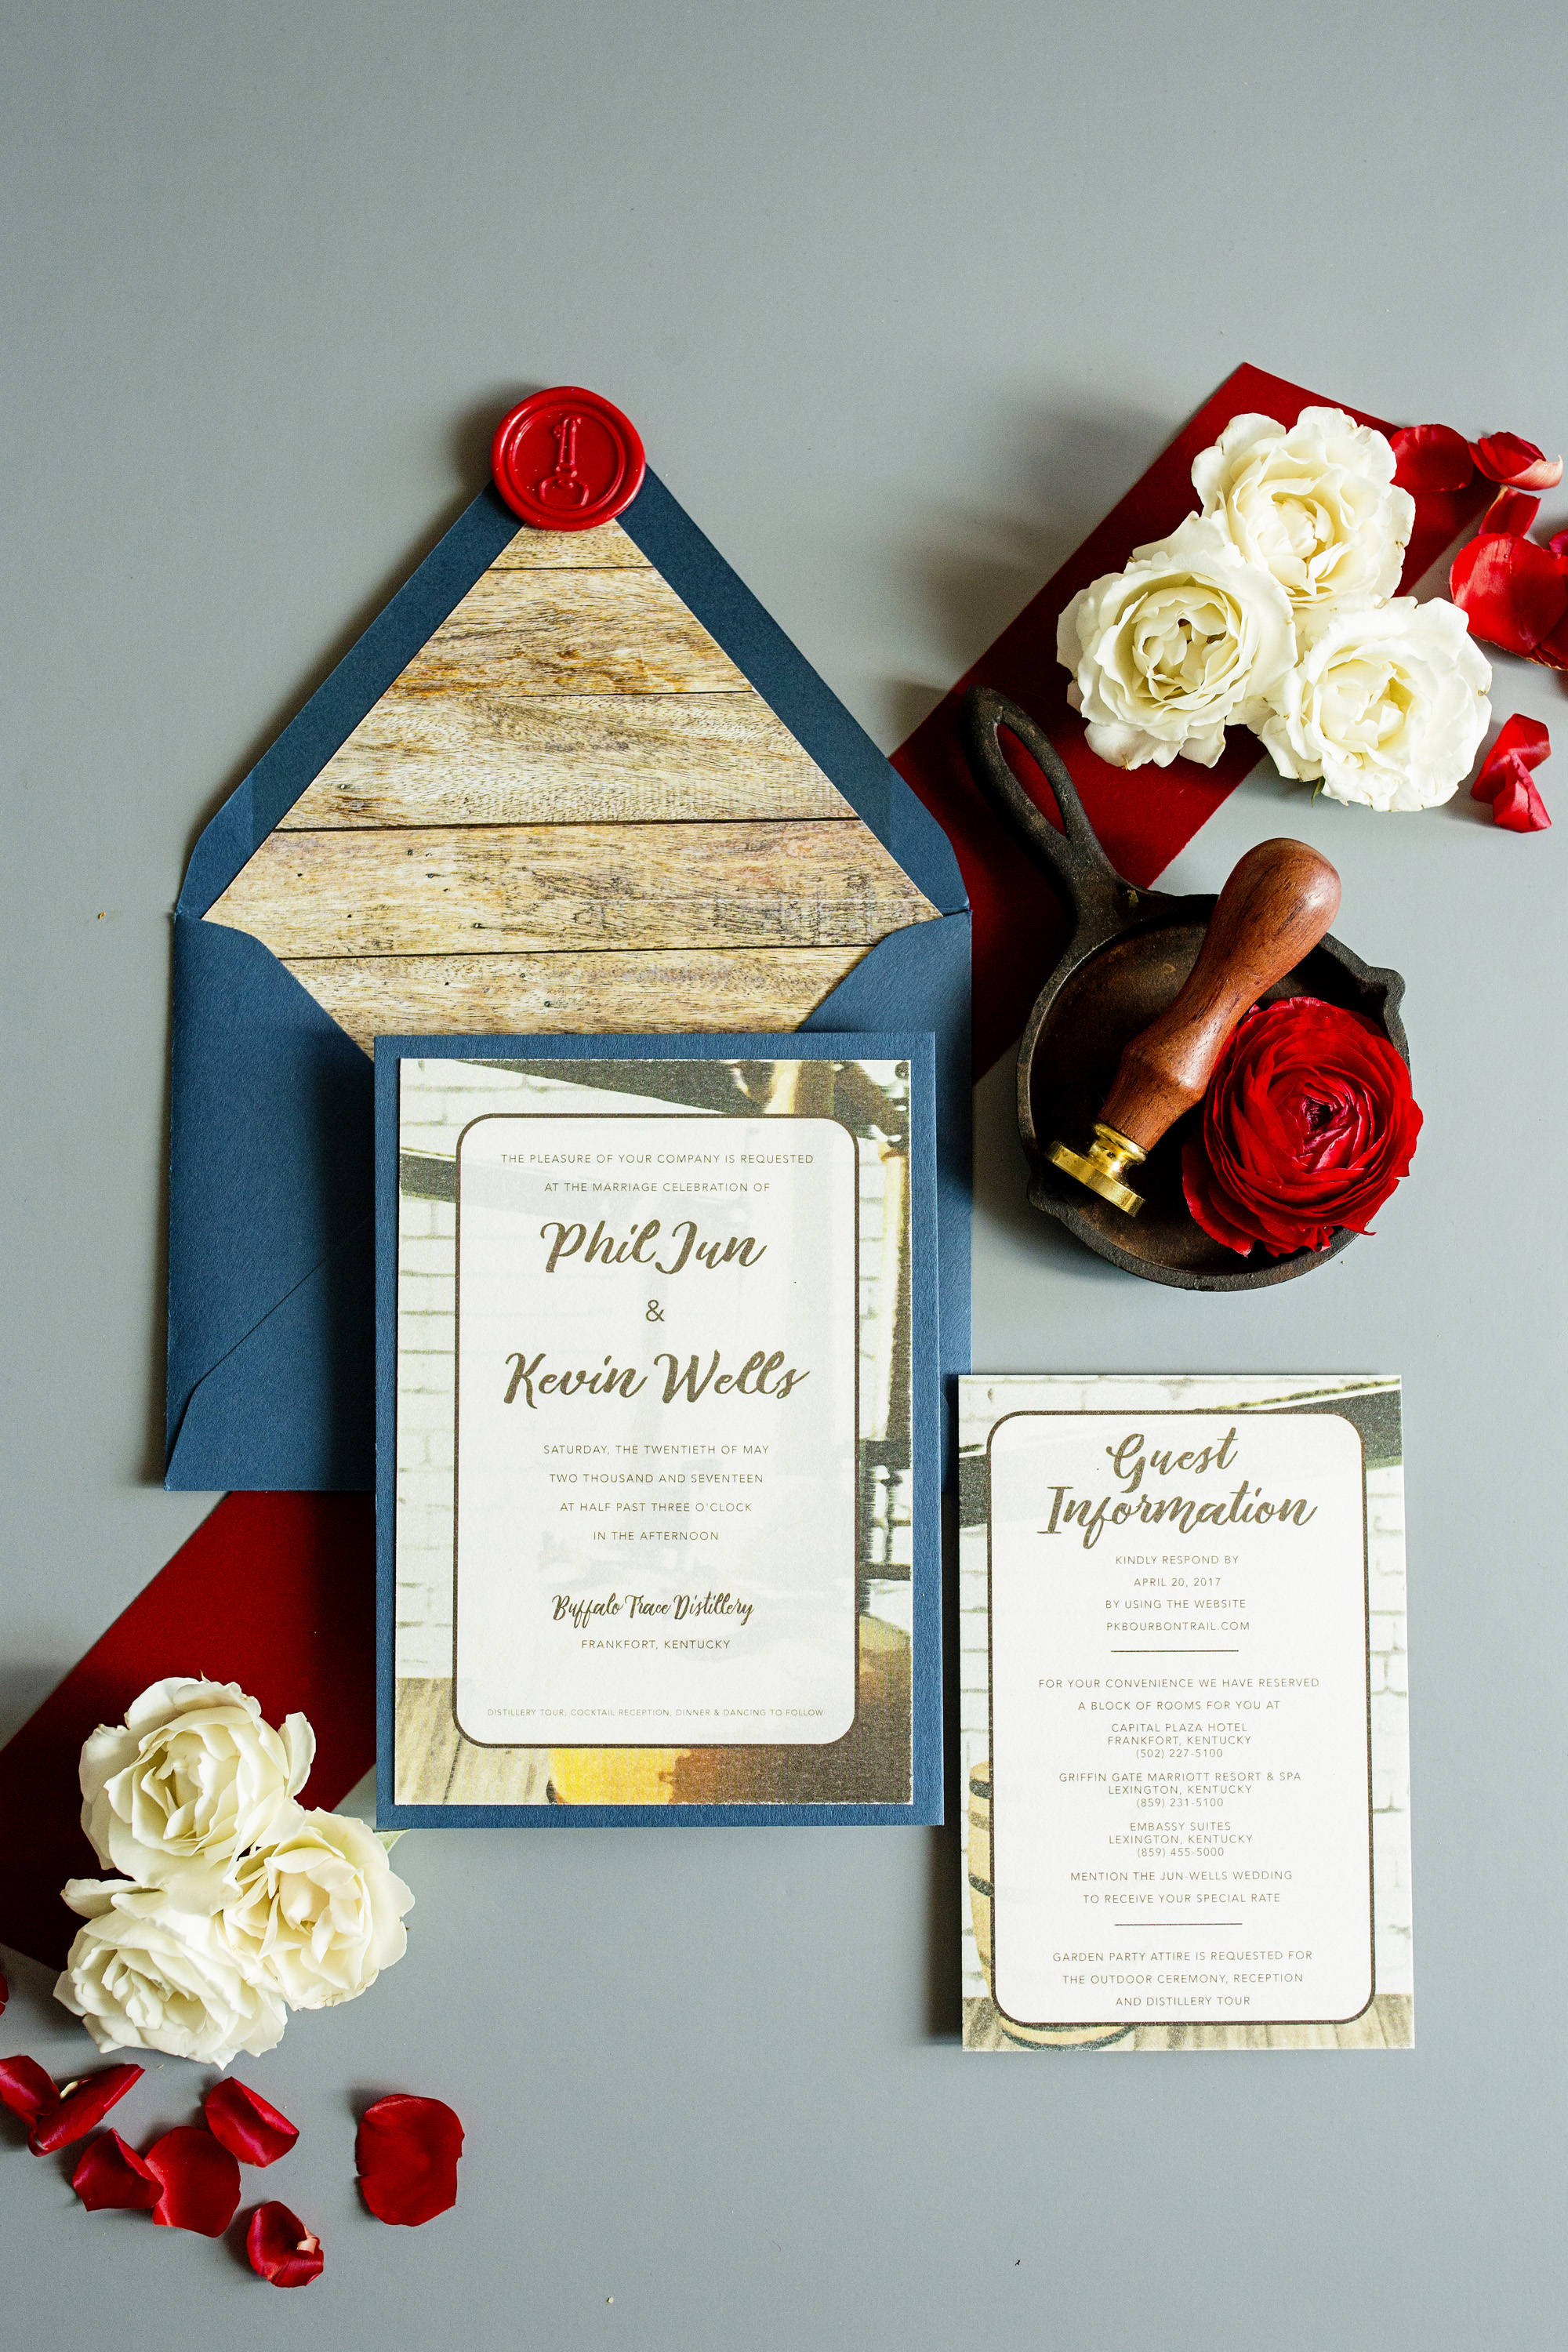 Seriously_Sabrina_Photography_Commercial_Simply_Done_Invites_2019_March_061